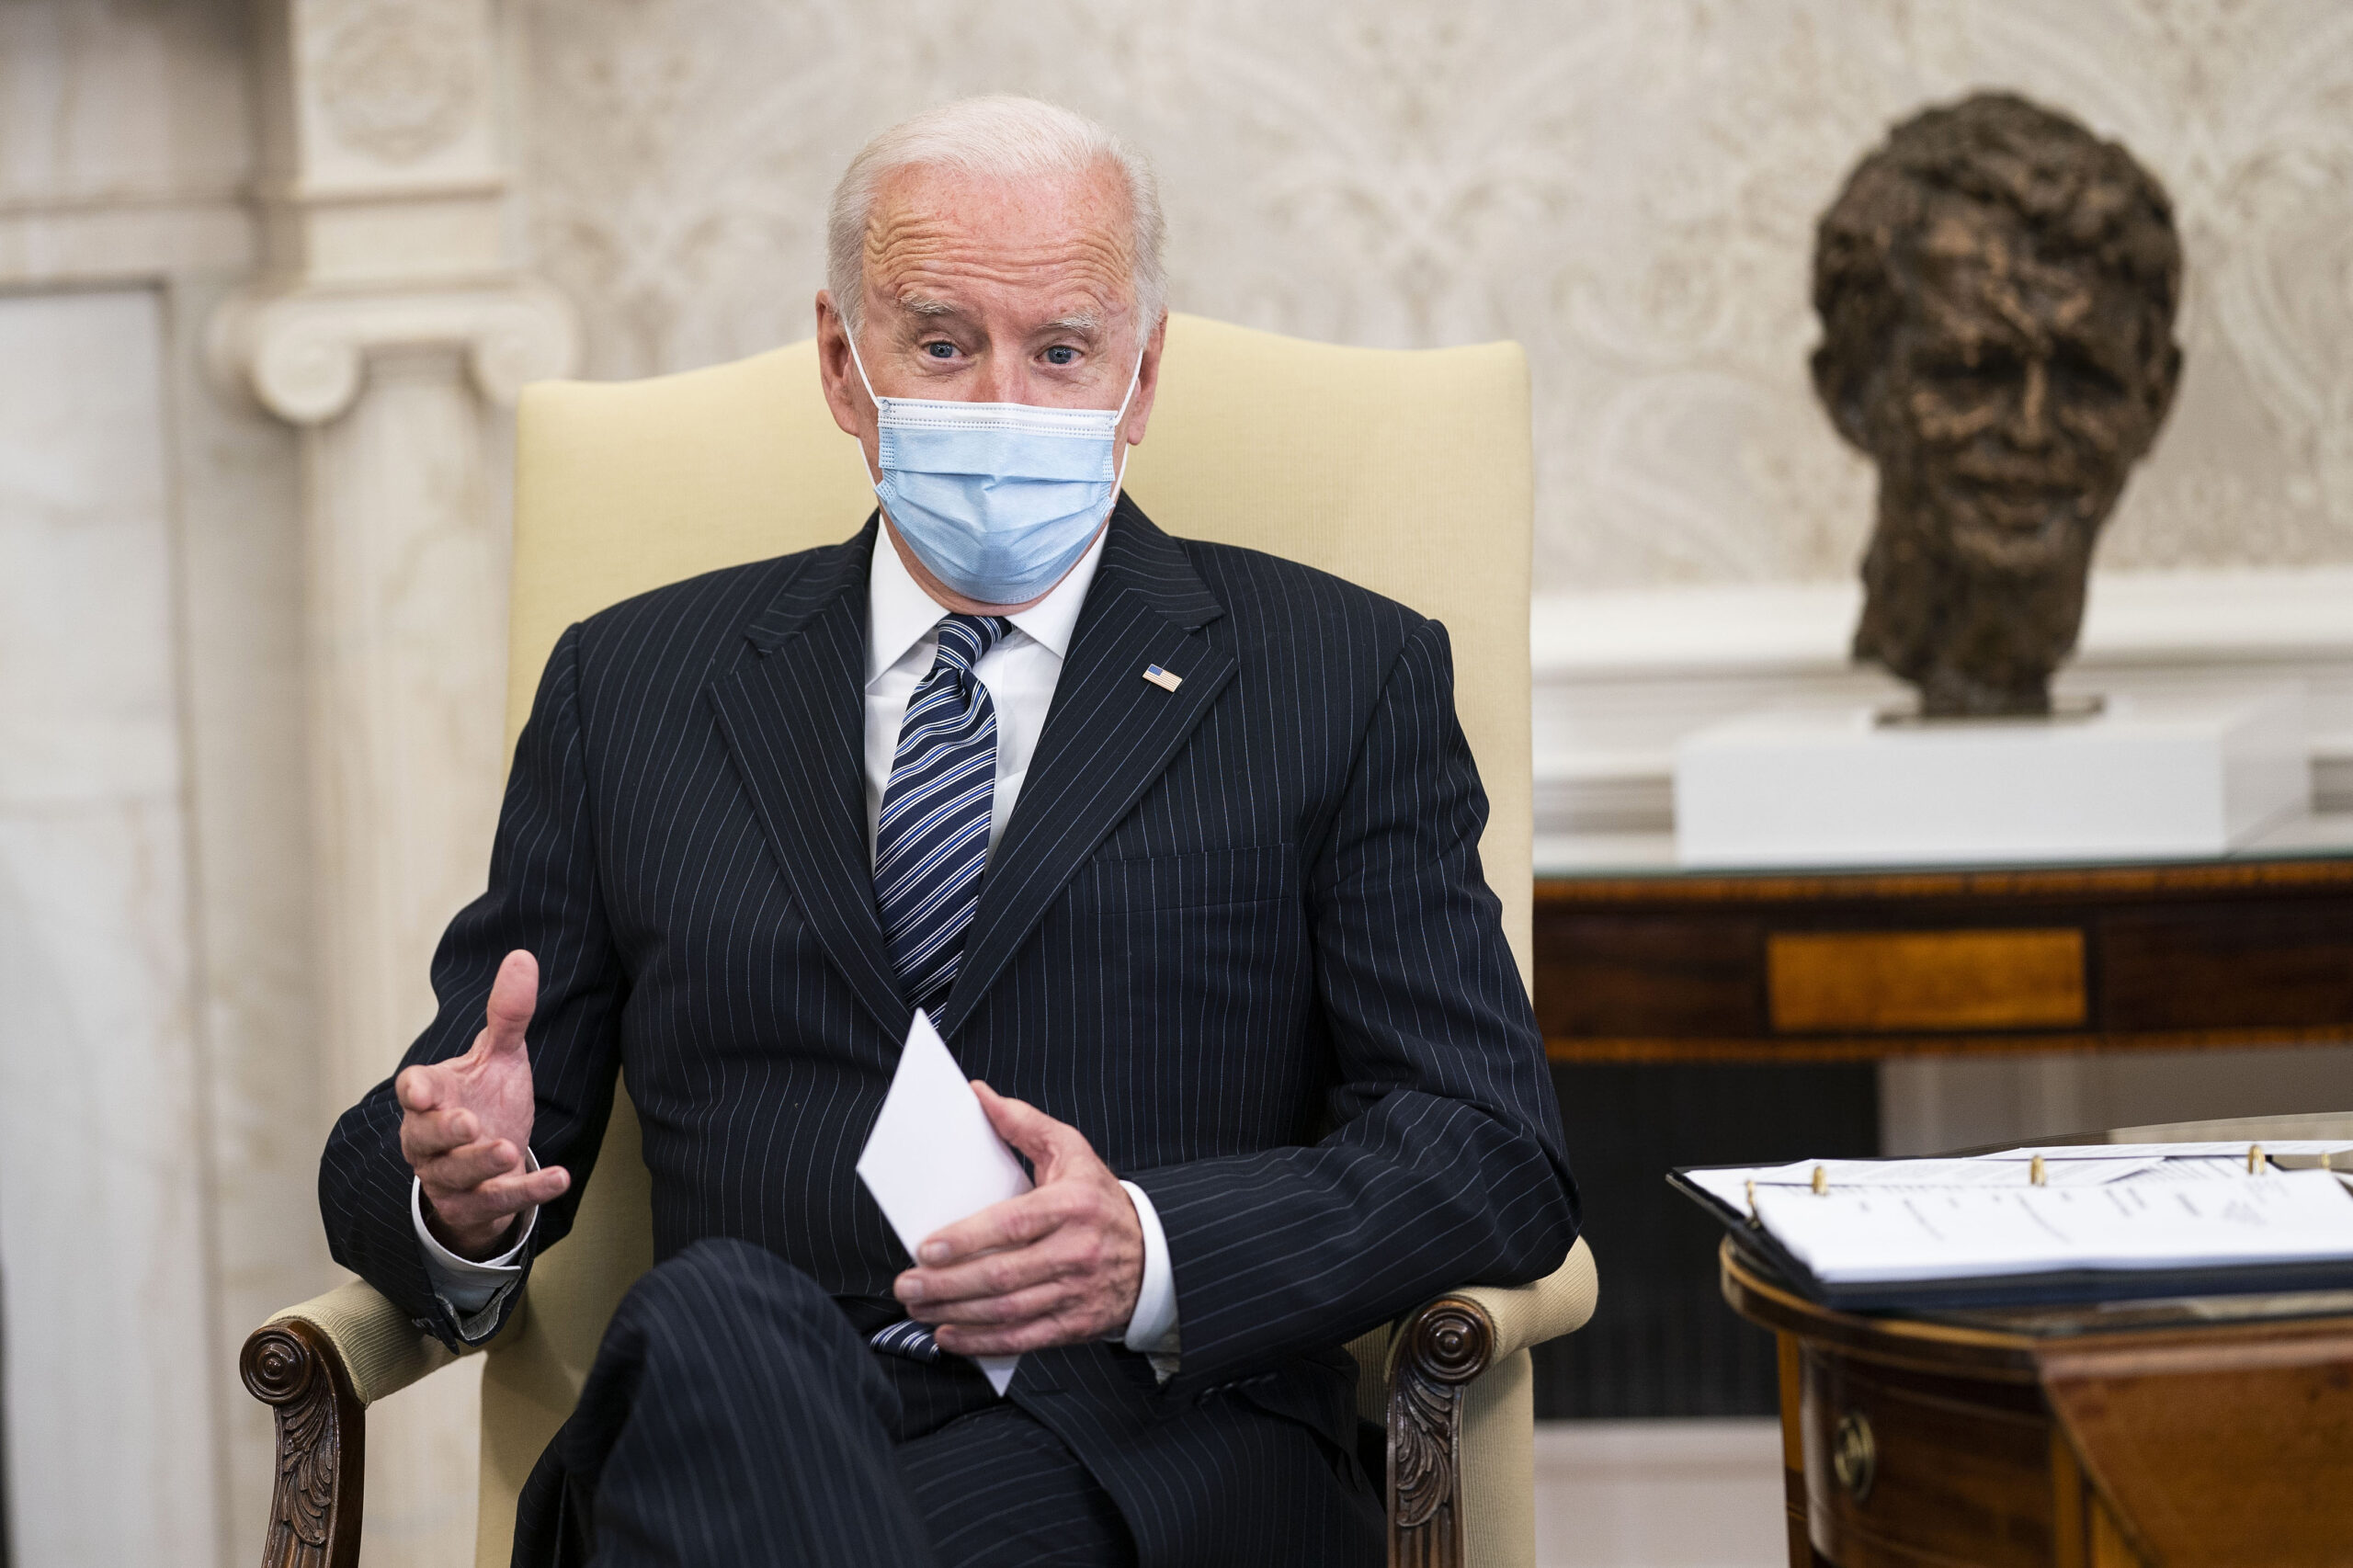 President Joe Biden speaks in the Oval Office at the White House April 19, 2021 in Washington, D.C. Credit: Doug Mills-Pool/Getty Images